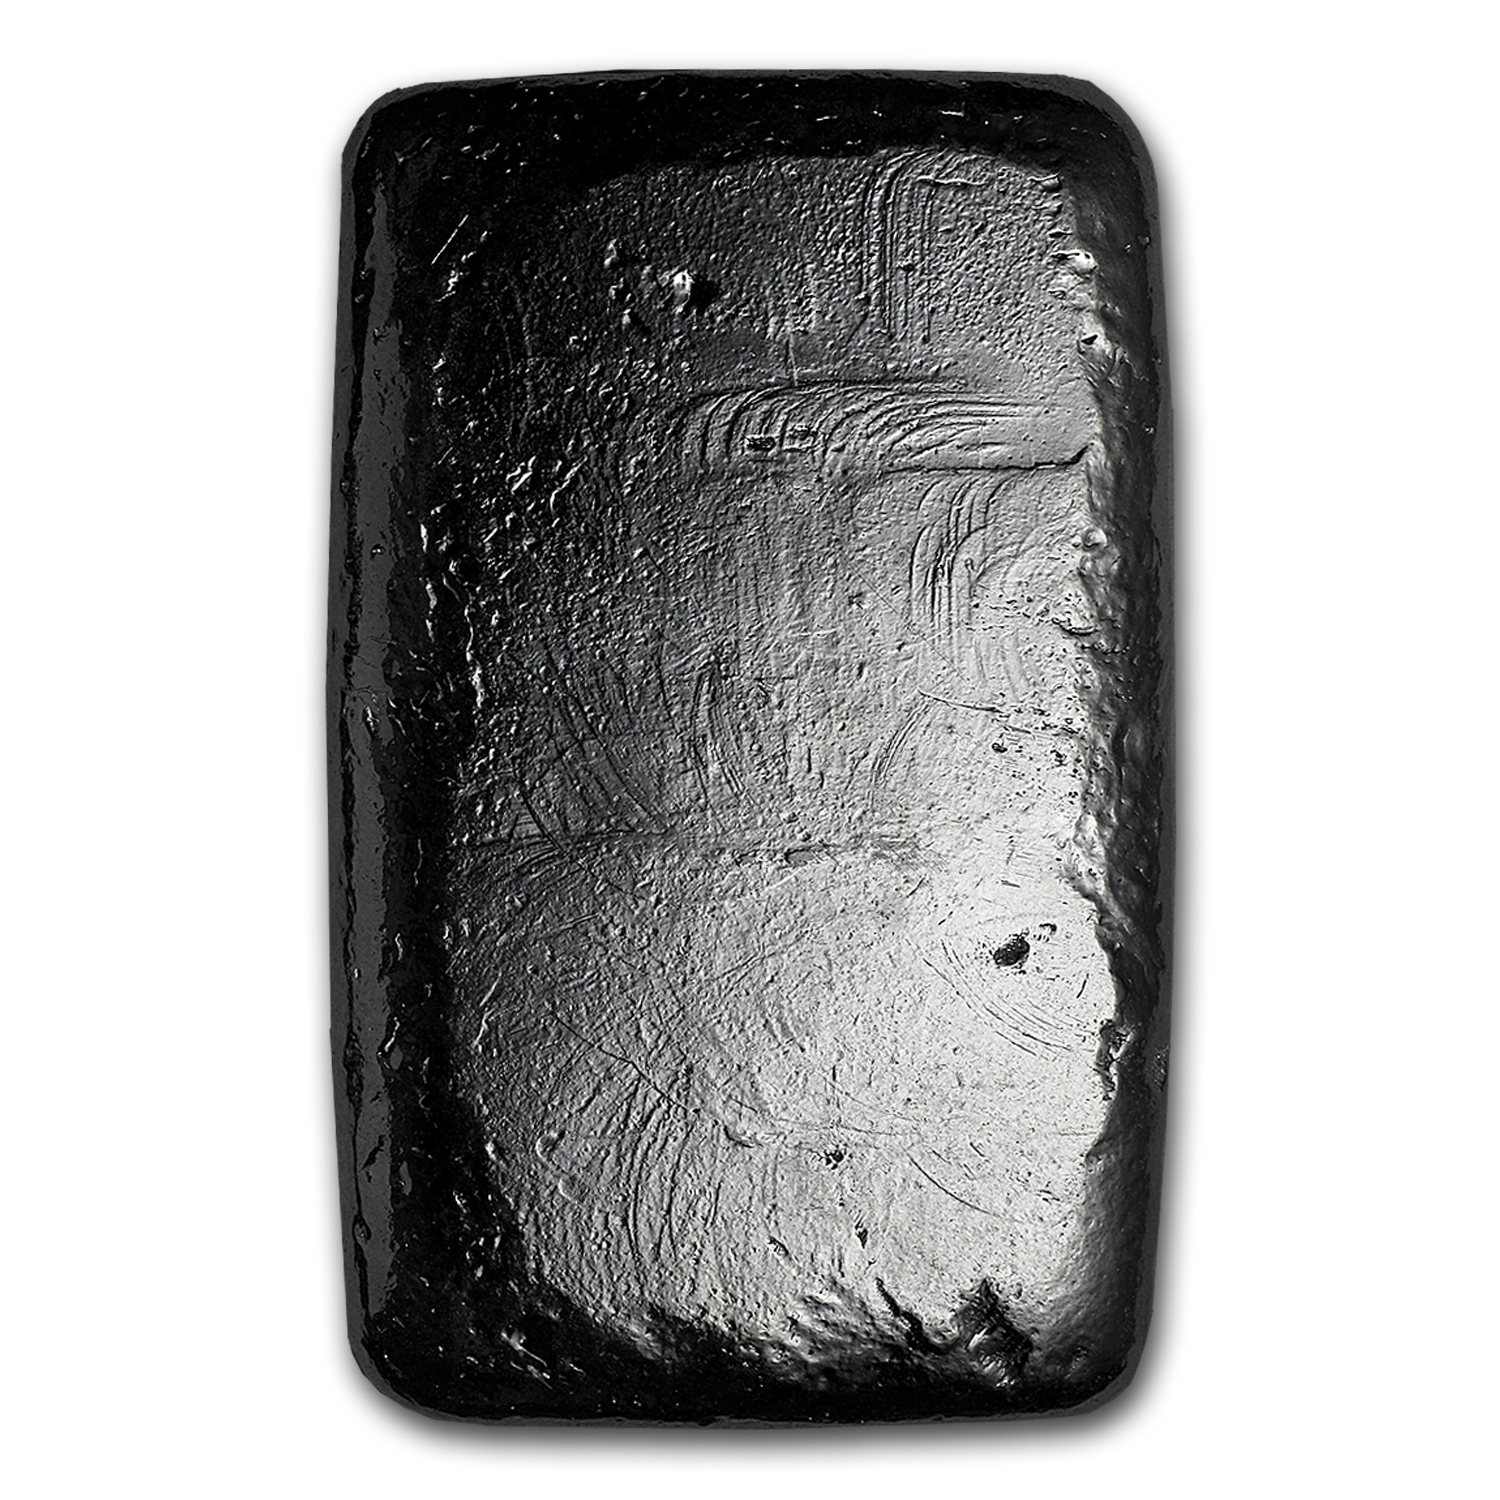 5 oz Silver Bar - Monarch Viking Warrior (Flail and Shield)